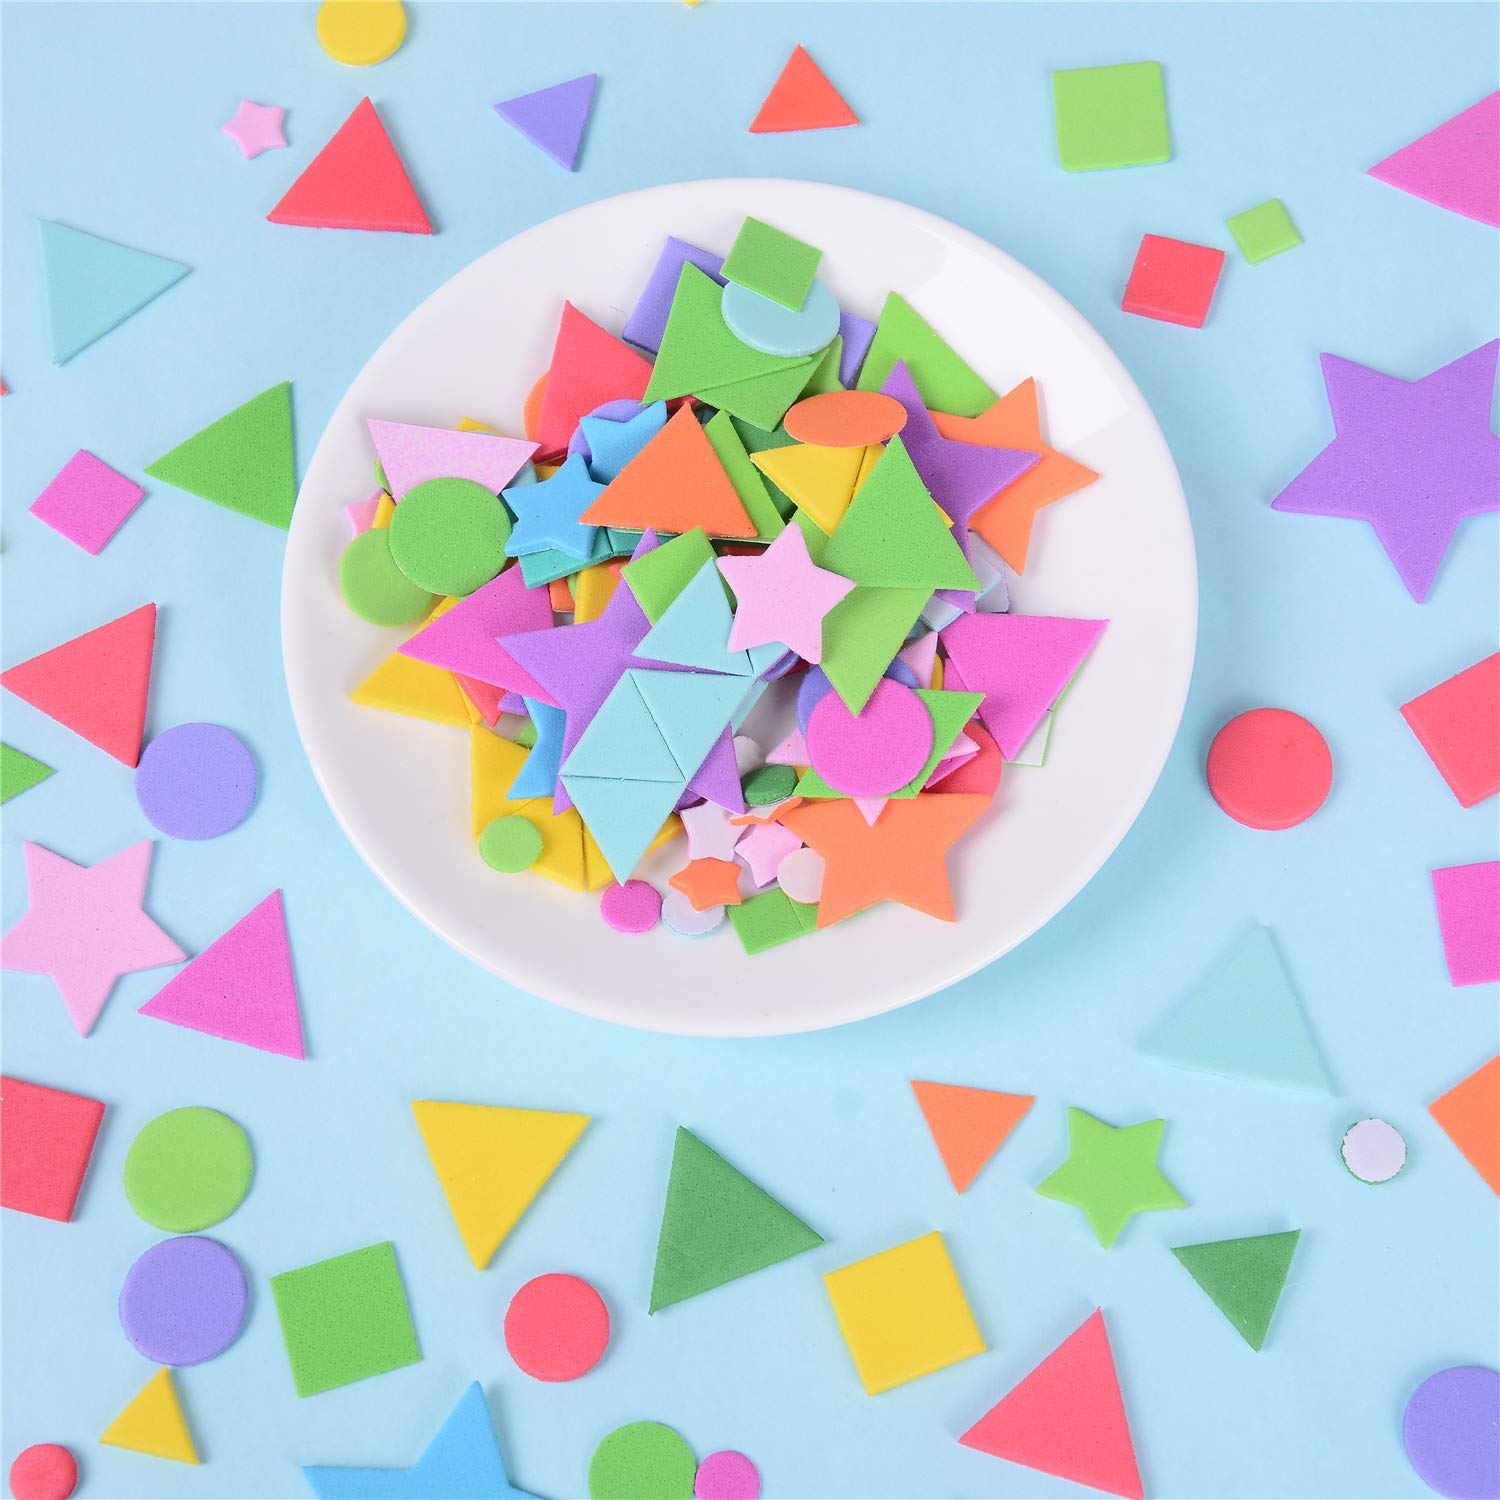 MX-Amigo 1000Pcs Mini Foam Stickers,Self Adhesive Geometry Foam Star Stickers,Stickers for Kids,Self Adhesive DIY Craft Sticker.Suitable for Childrens Crafts,Greeting Cards and Home Decoration.